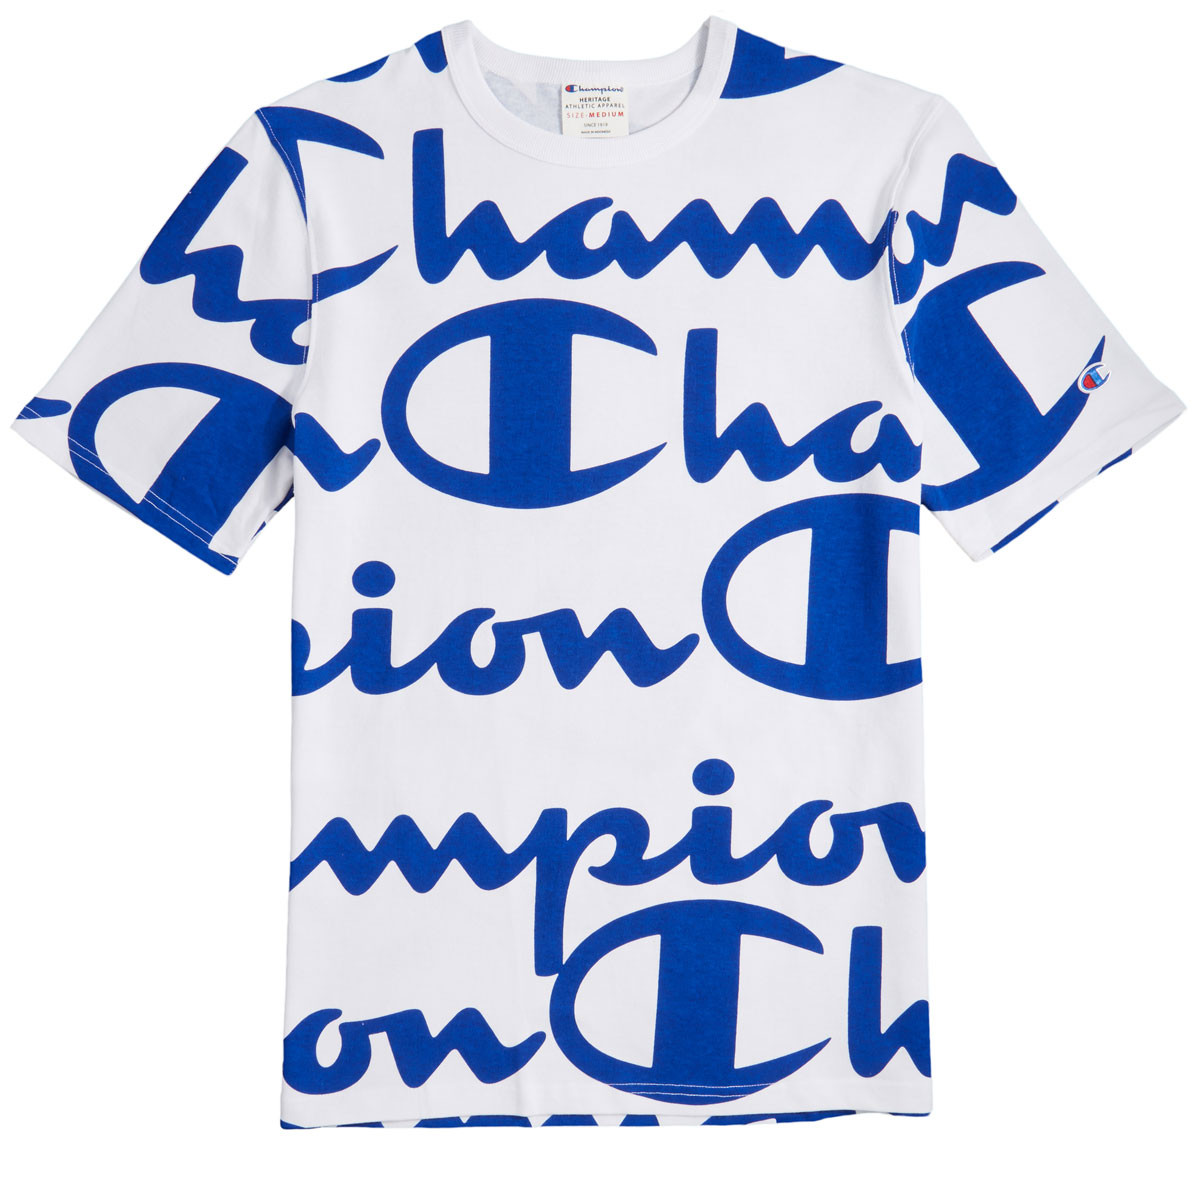 2ee4502b Champion Heritage All Over Giant Script T-Shirt - White/Surf